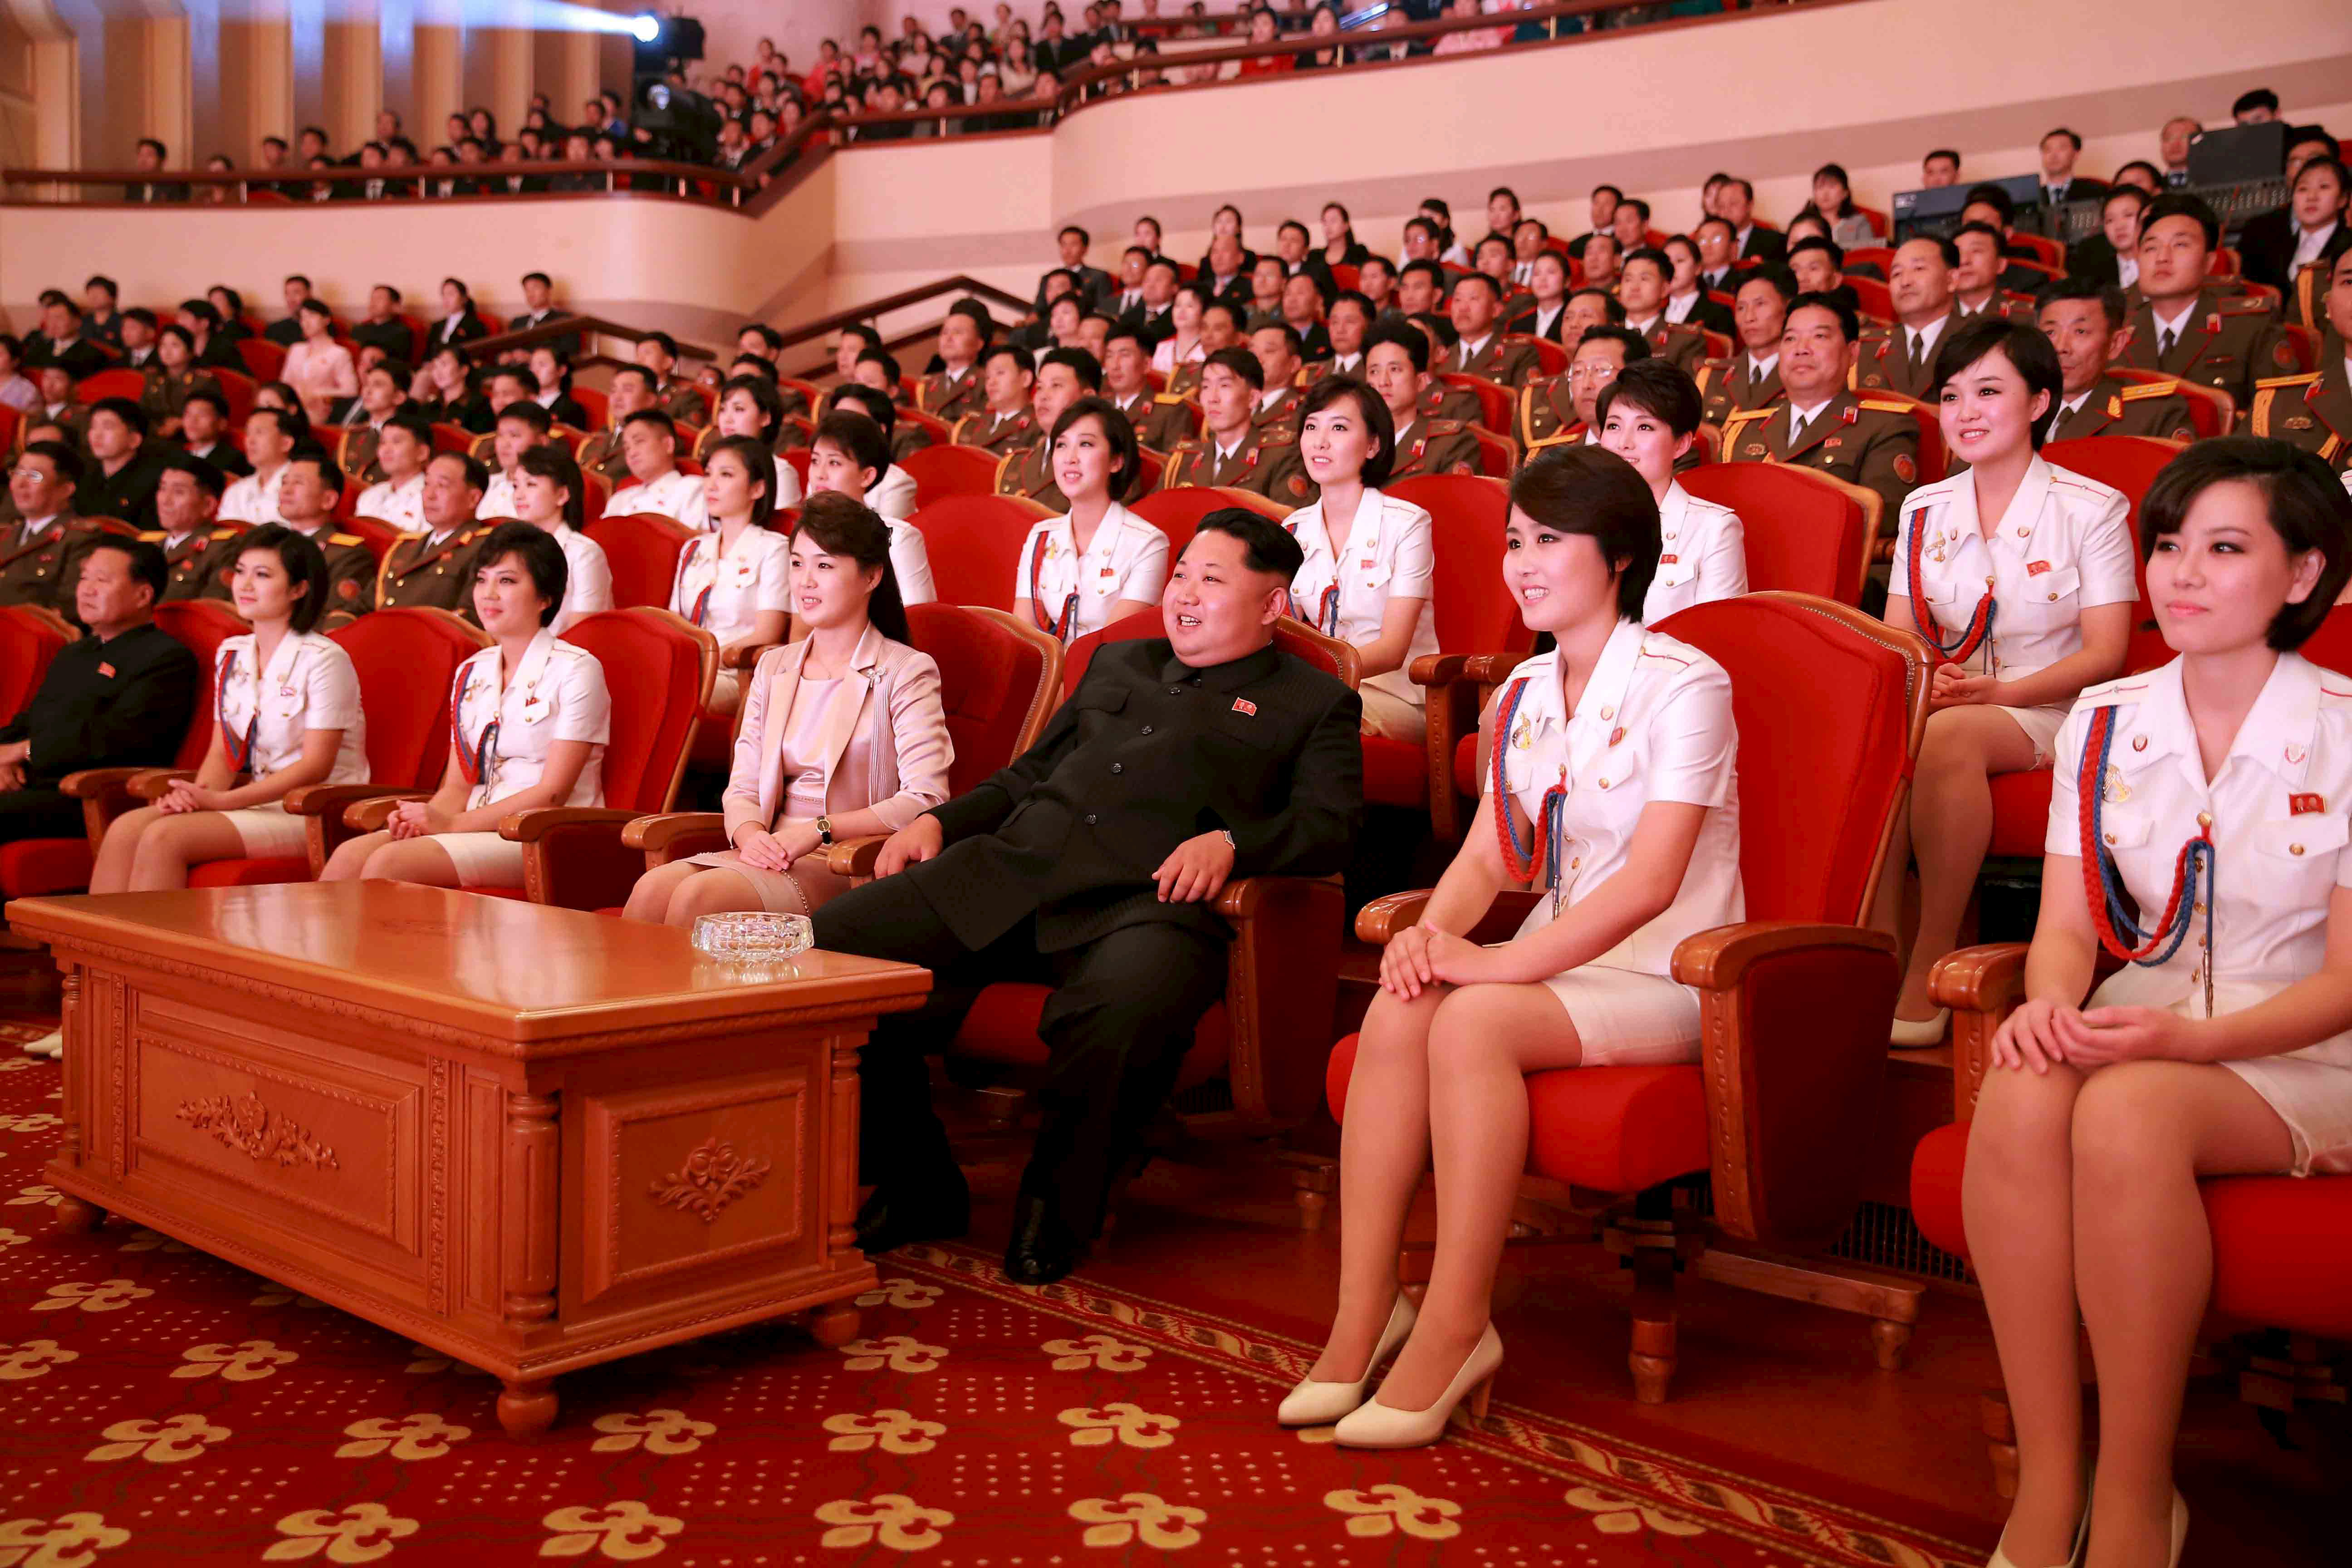 North Korean leader Kim Jong Un (3rd R) and wife Ri Sol Ju (4th L) enjoy an art performance given by the Chongbong Band to mark the 70th anniversary of the founding of the Workers' Party of Korea (WPK) in this undated photo released by North Korea's ...